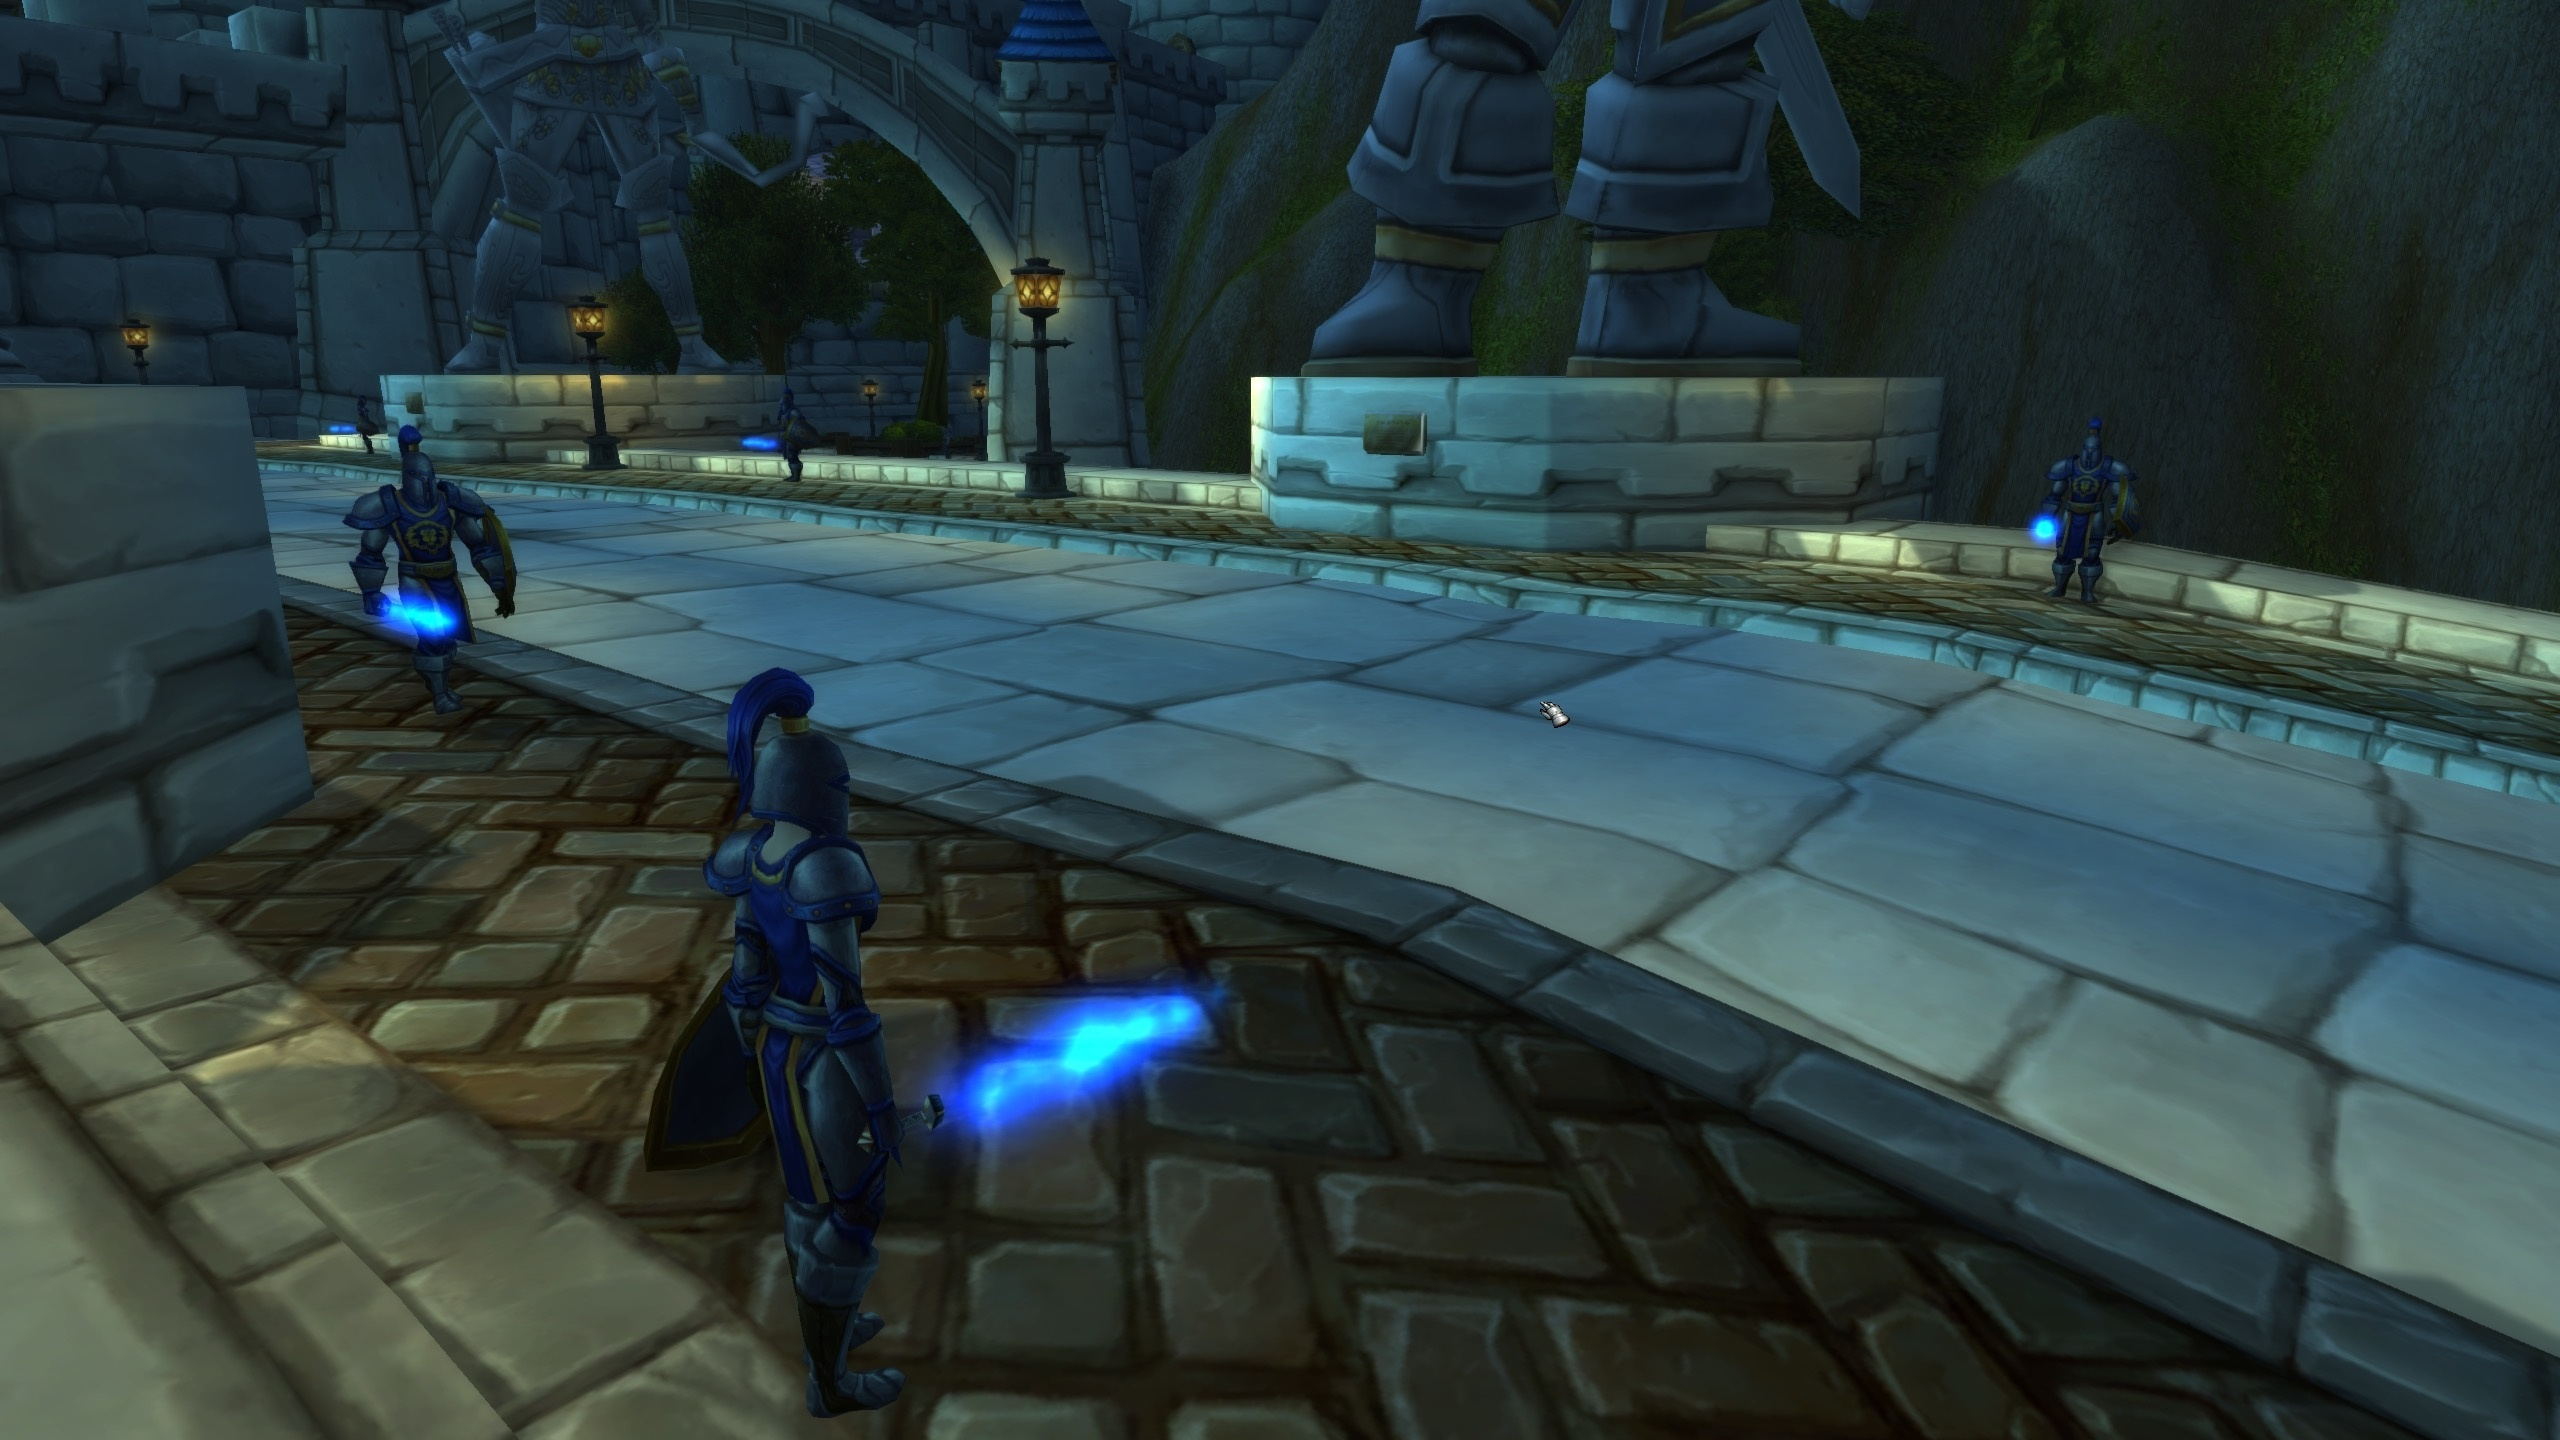 Star Wars References In Wow And City Guards Have Lightsabers For